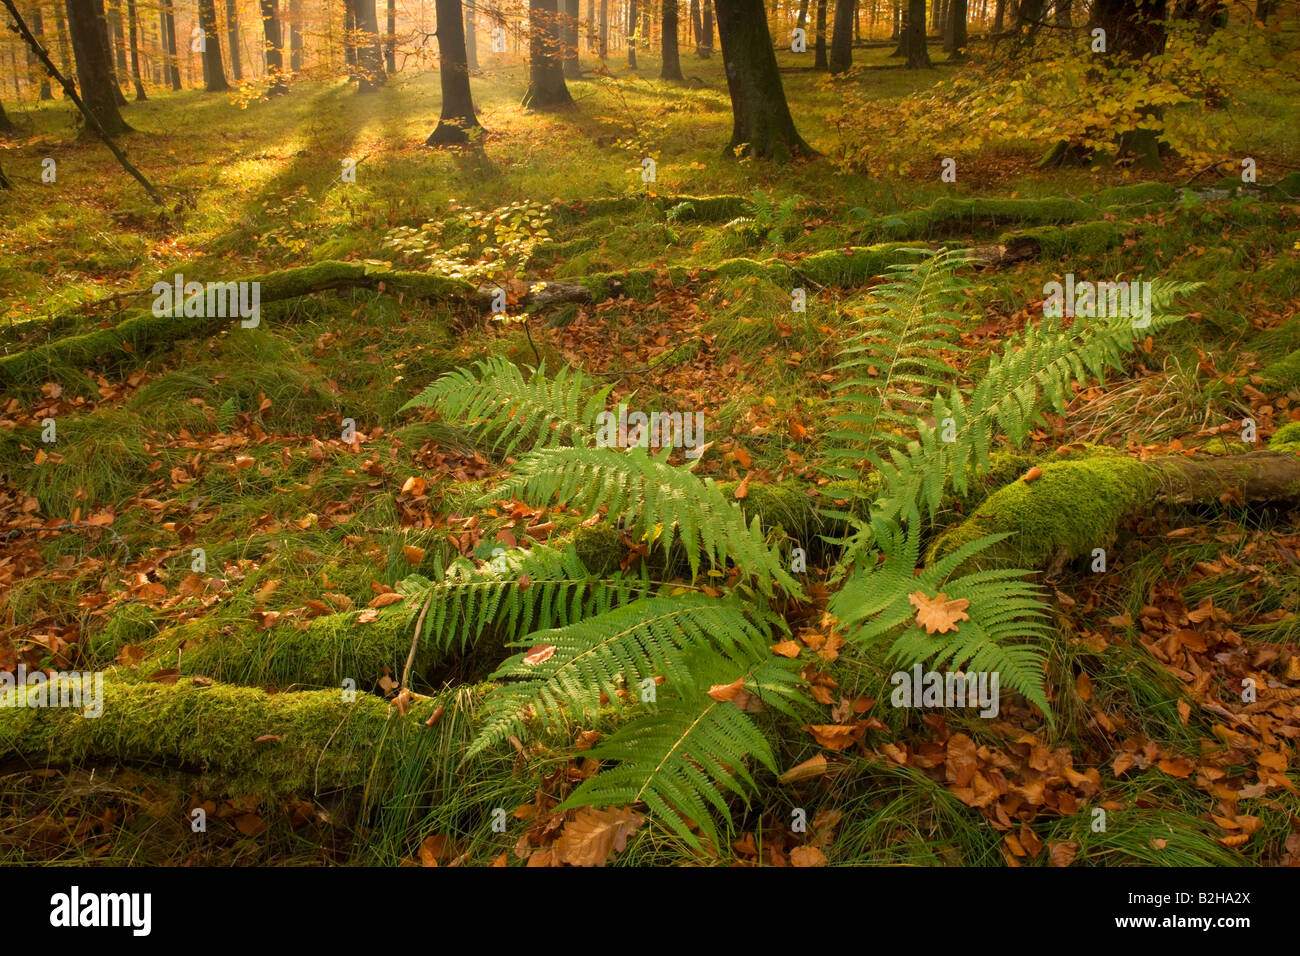 autumn forest leaves fall foliage Schwaebische Alb Germany autumnal ...